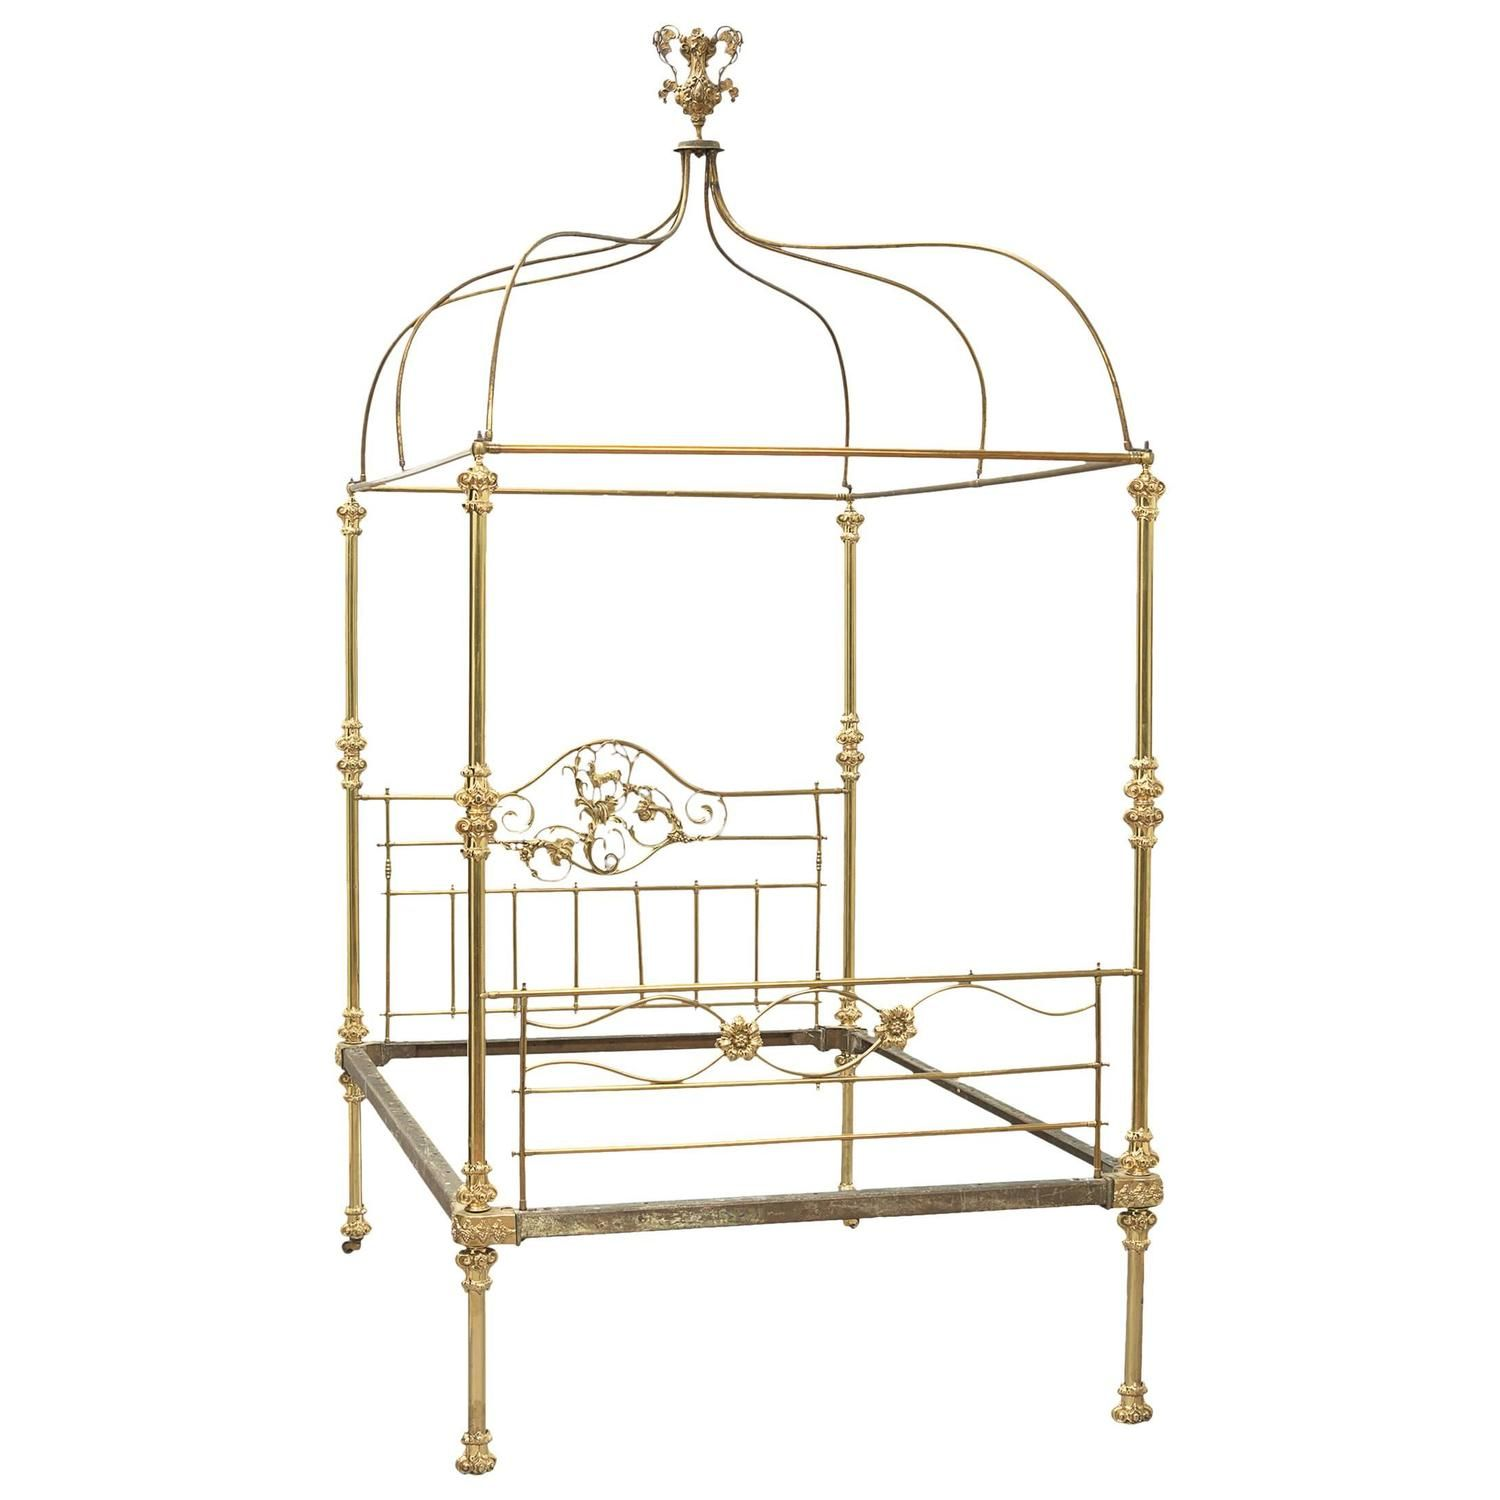 19th Century Victorian Brass FourPoster Canopy Bed from